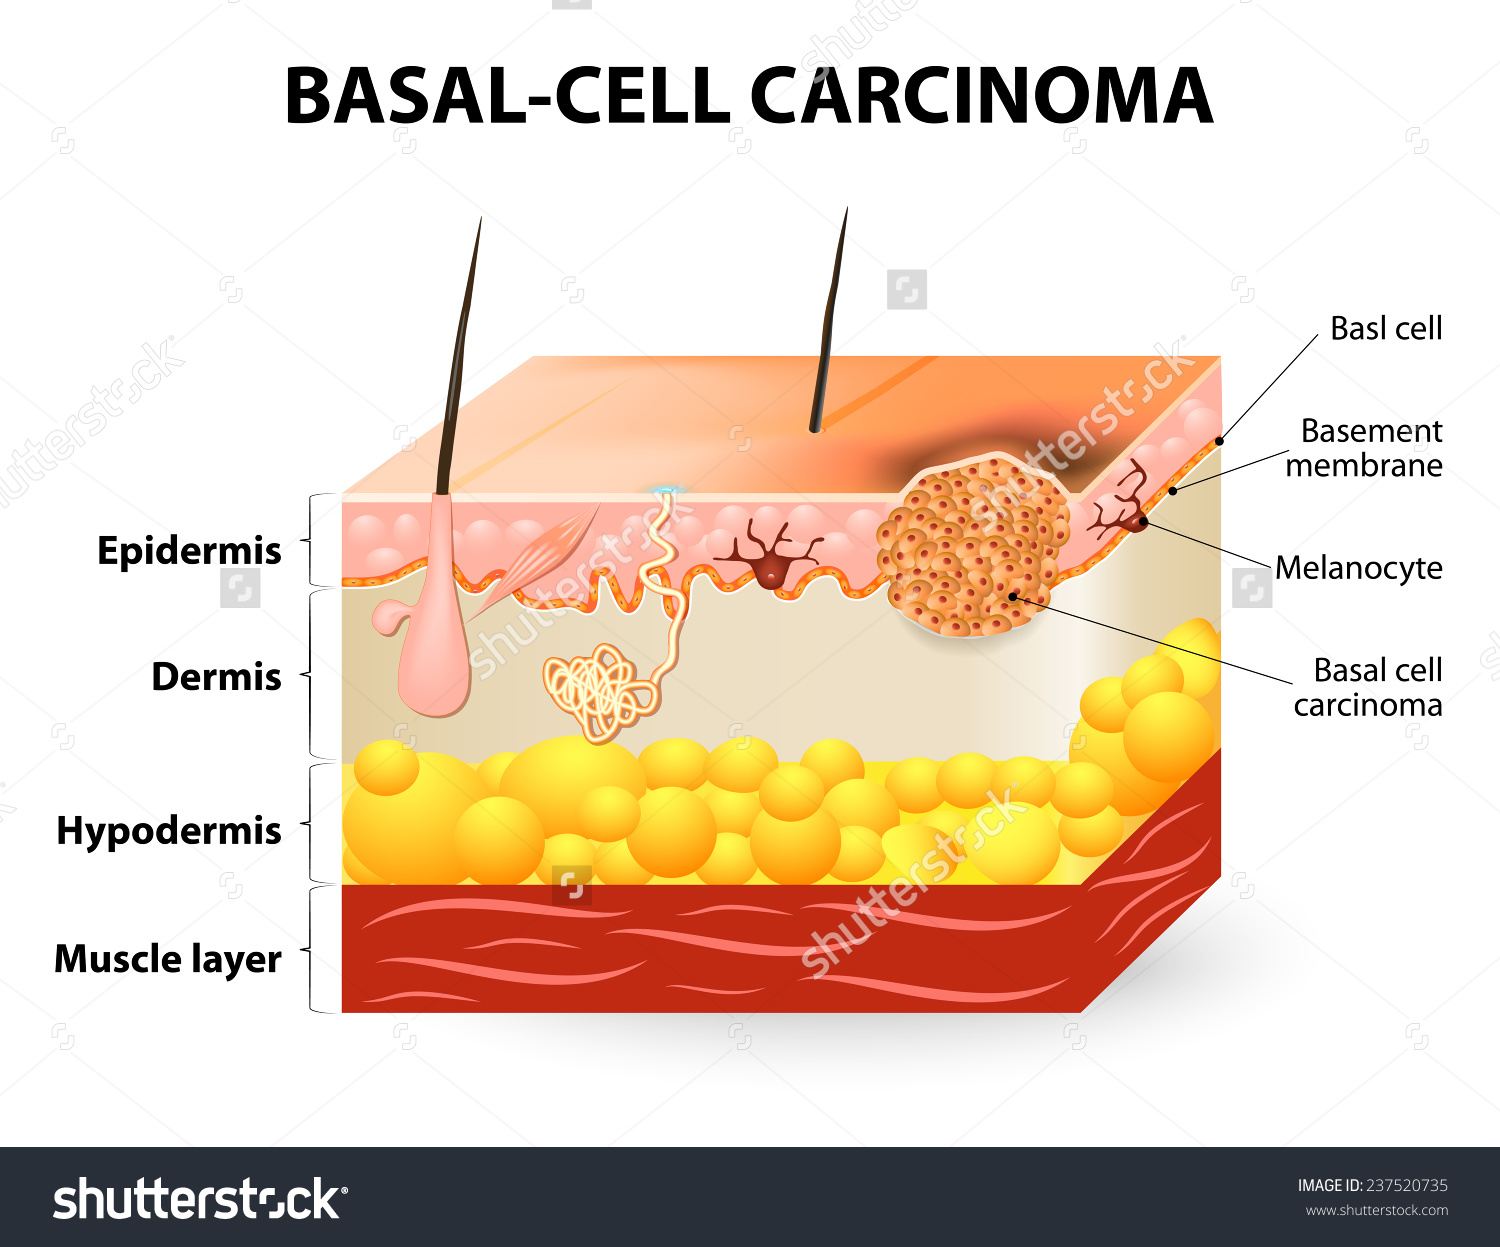 Skin Cancer Basalcell Carcinoma Basal Cell Stock Vector 237520735.